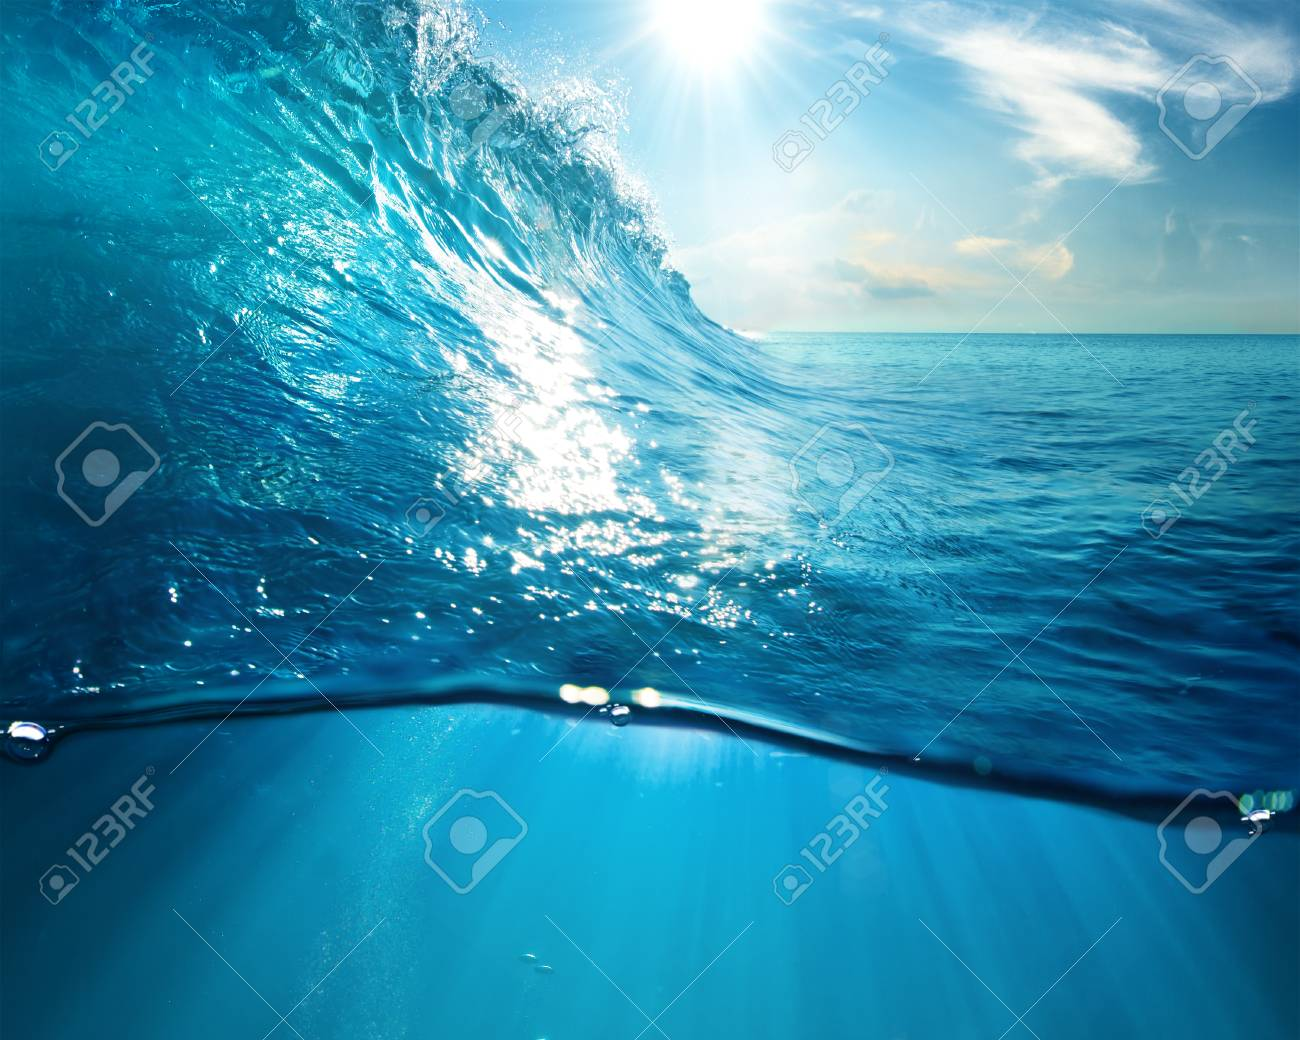 ocean view design template with underwater part and sunset skylight